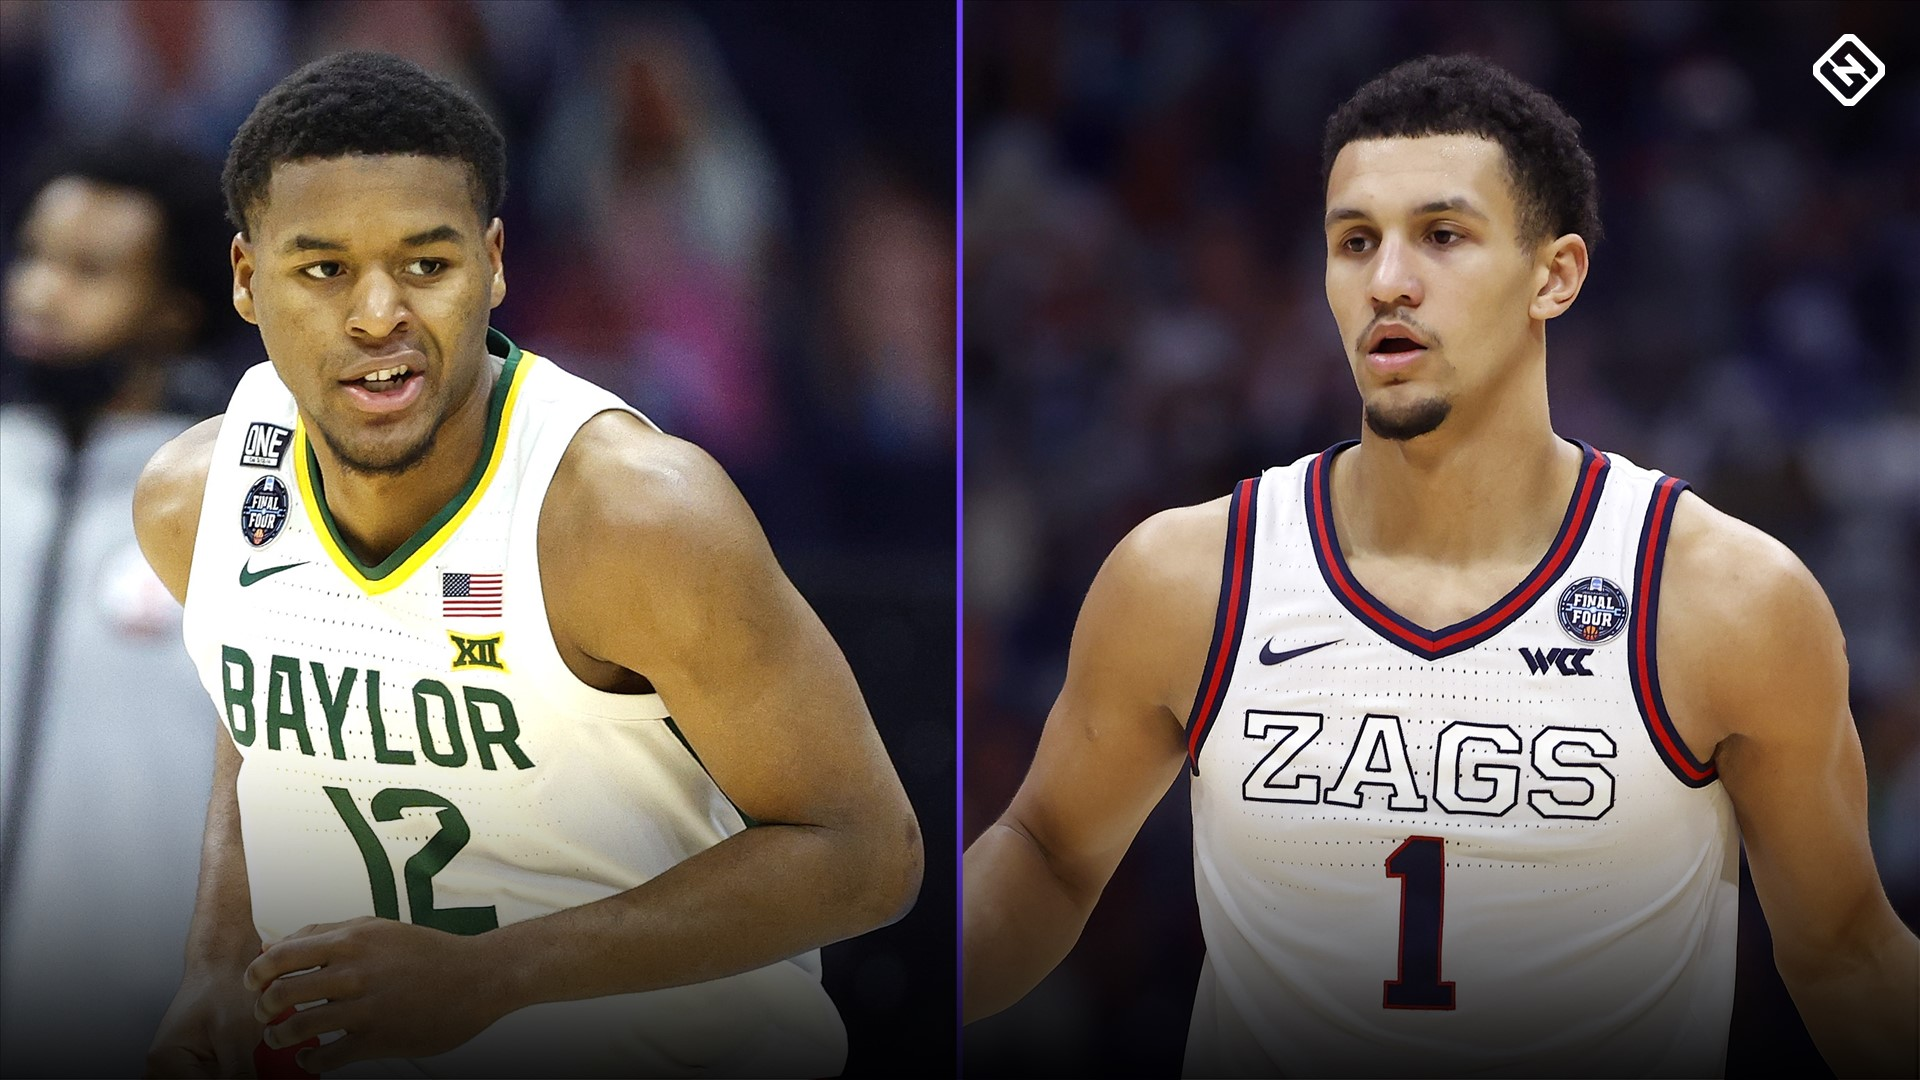 Gonzaga vs. Baylor live score, updates, highlights from 2021 NCAA national championship